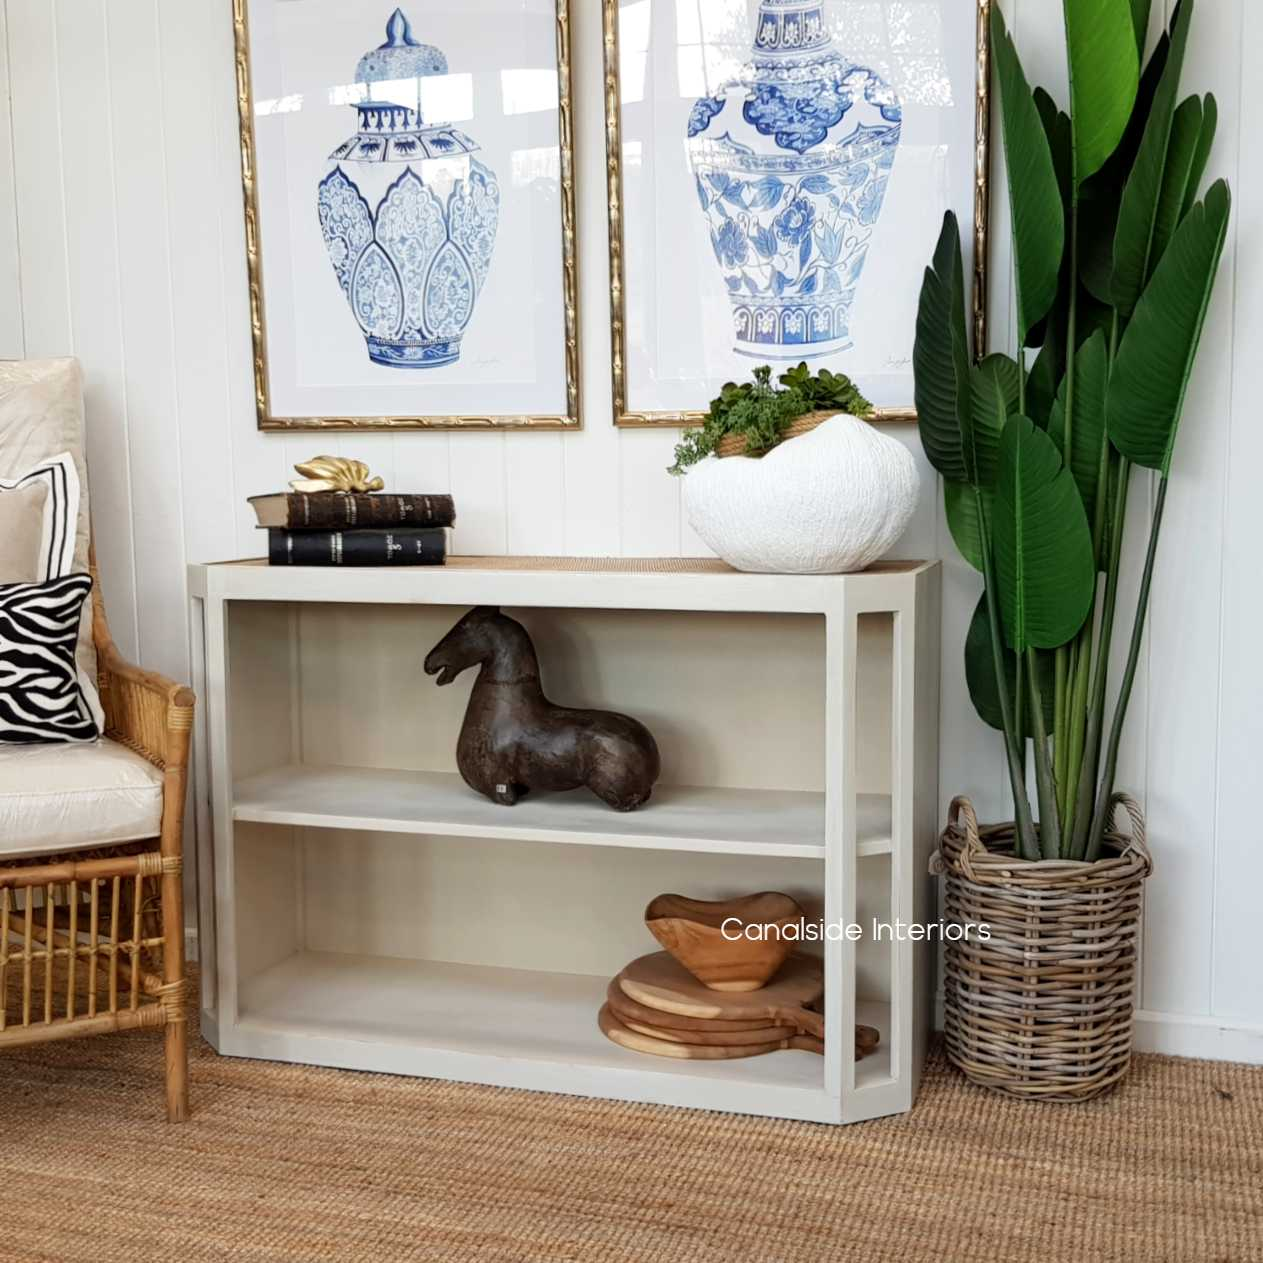 Brielle Rattan Console HAMPTONS Style, PLANTATION Style, LIVING Room, LIVING STORAGE Consoles Entryway Living Room Entry shoe island coastal